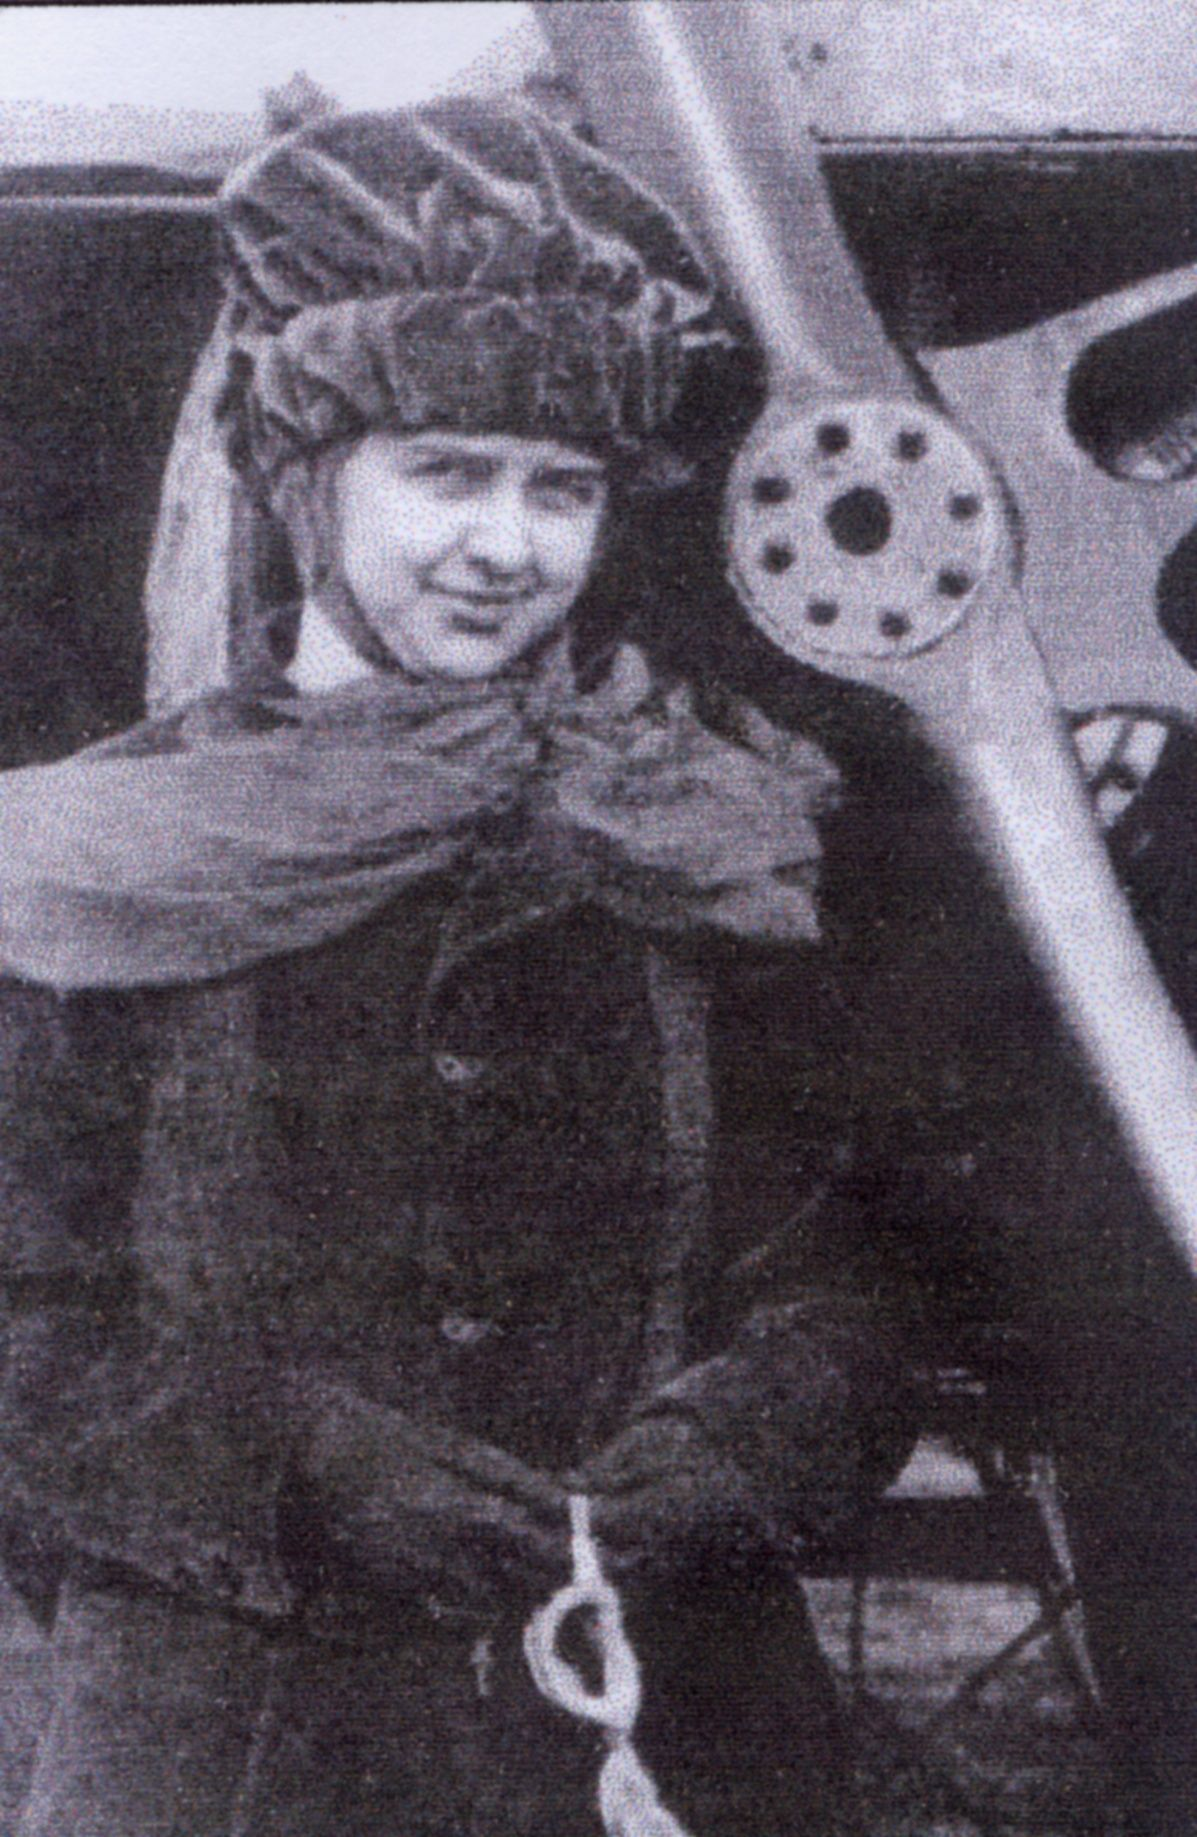 Miller was the third female pilot in the country